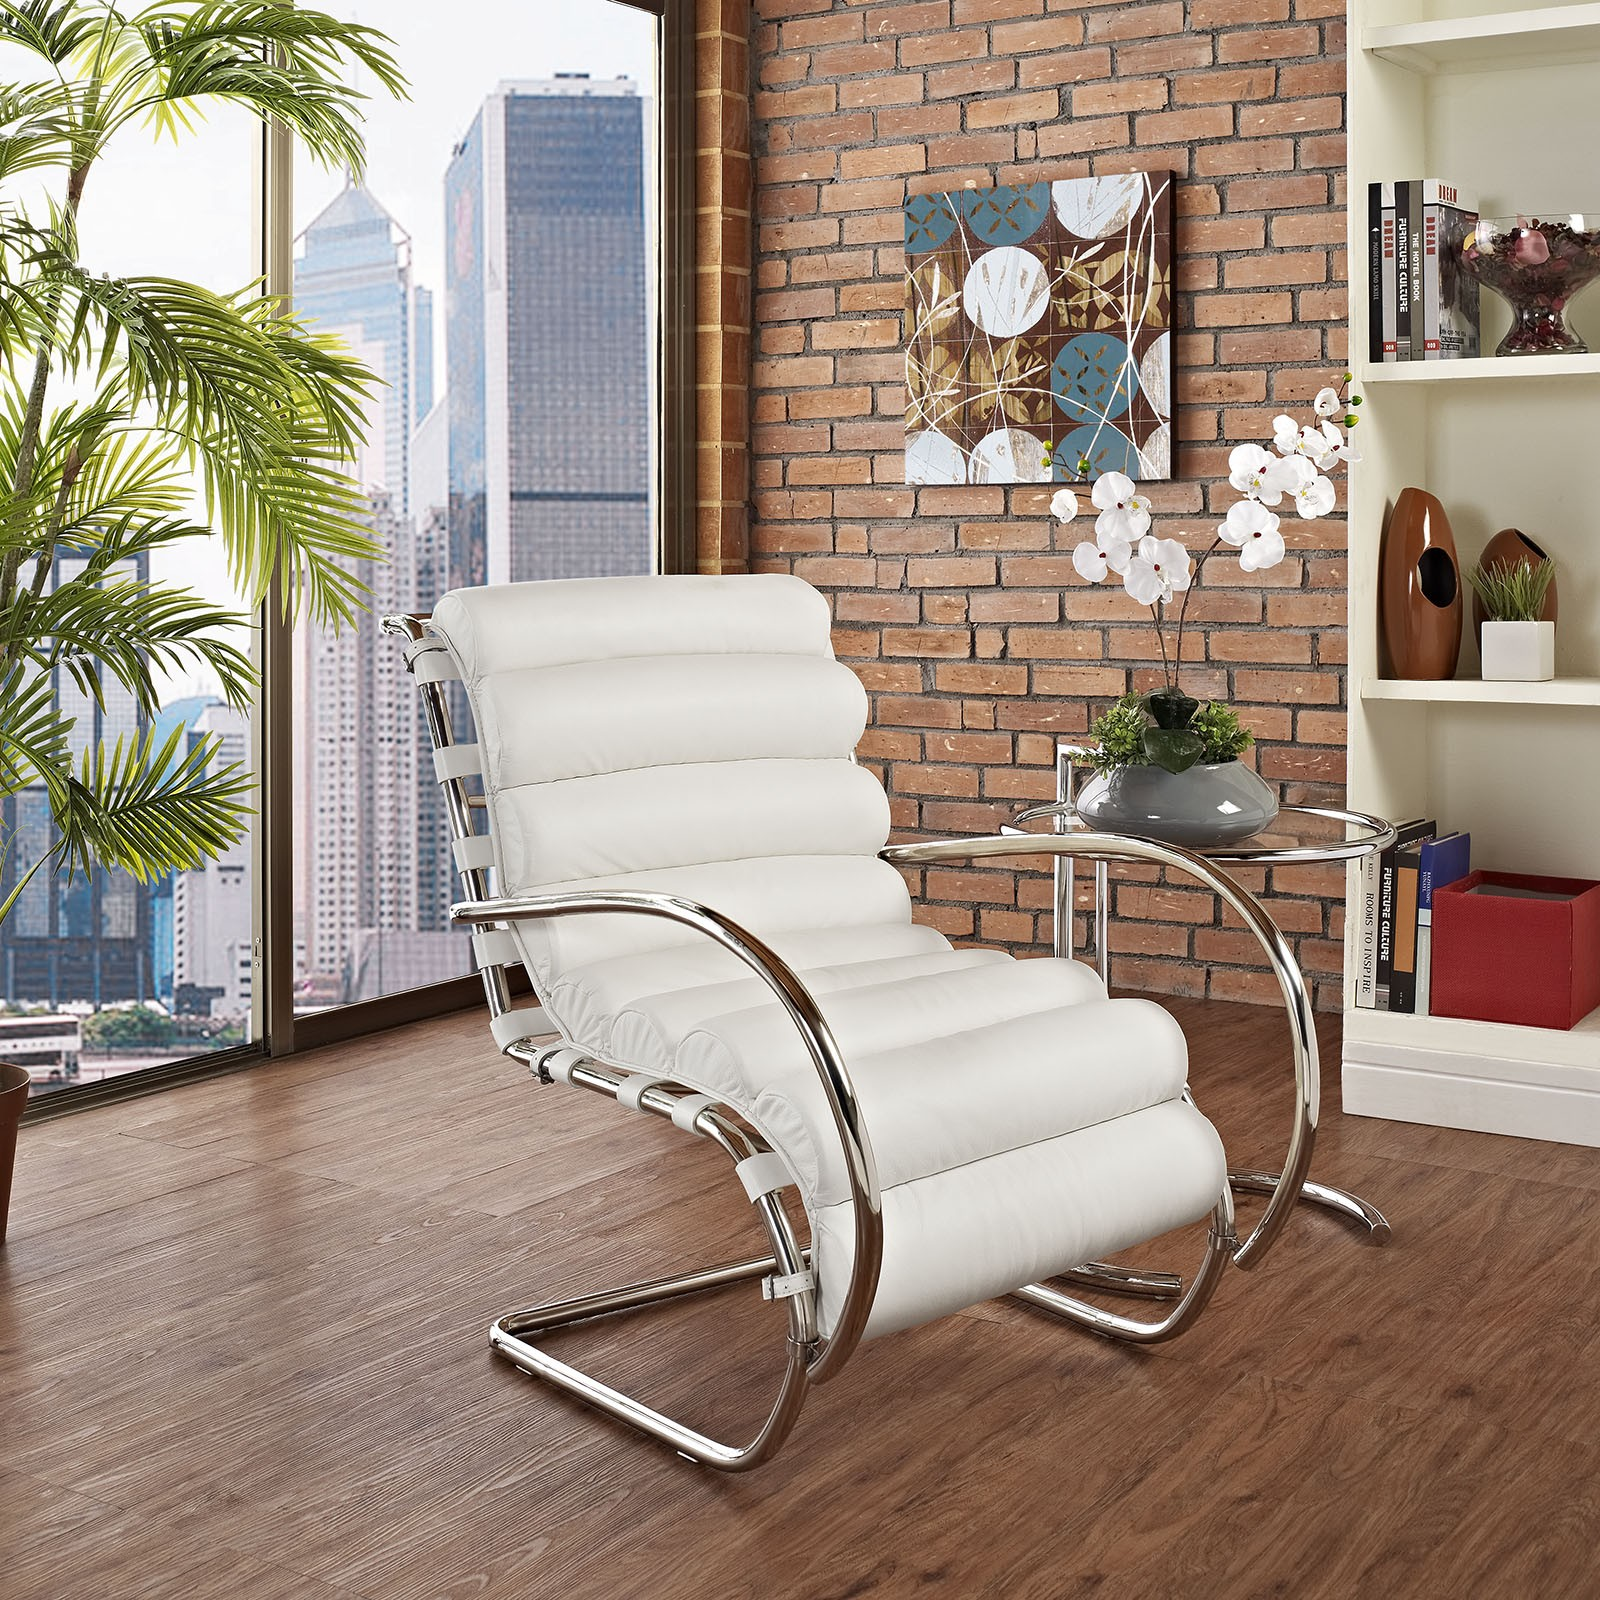 MR LOUNGE CHAIR REPLICA